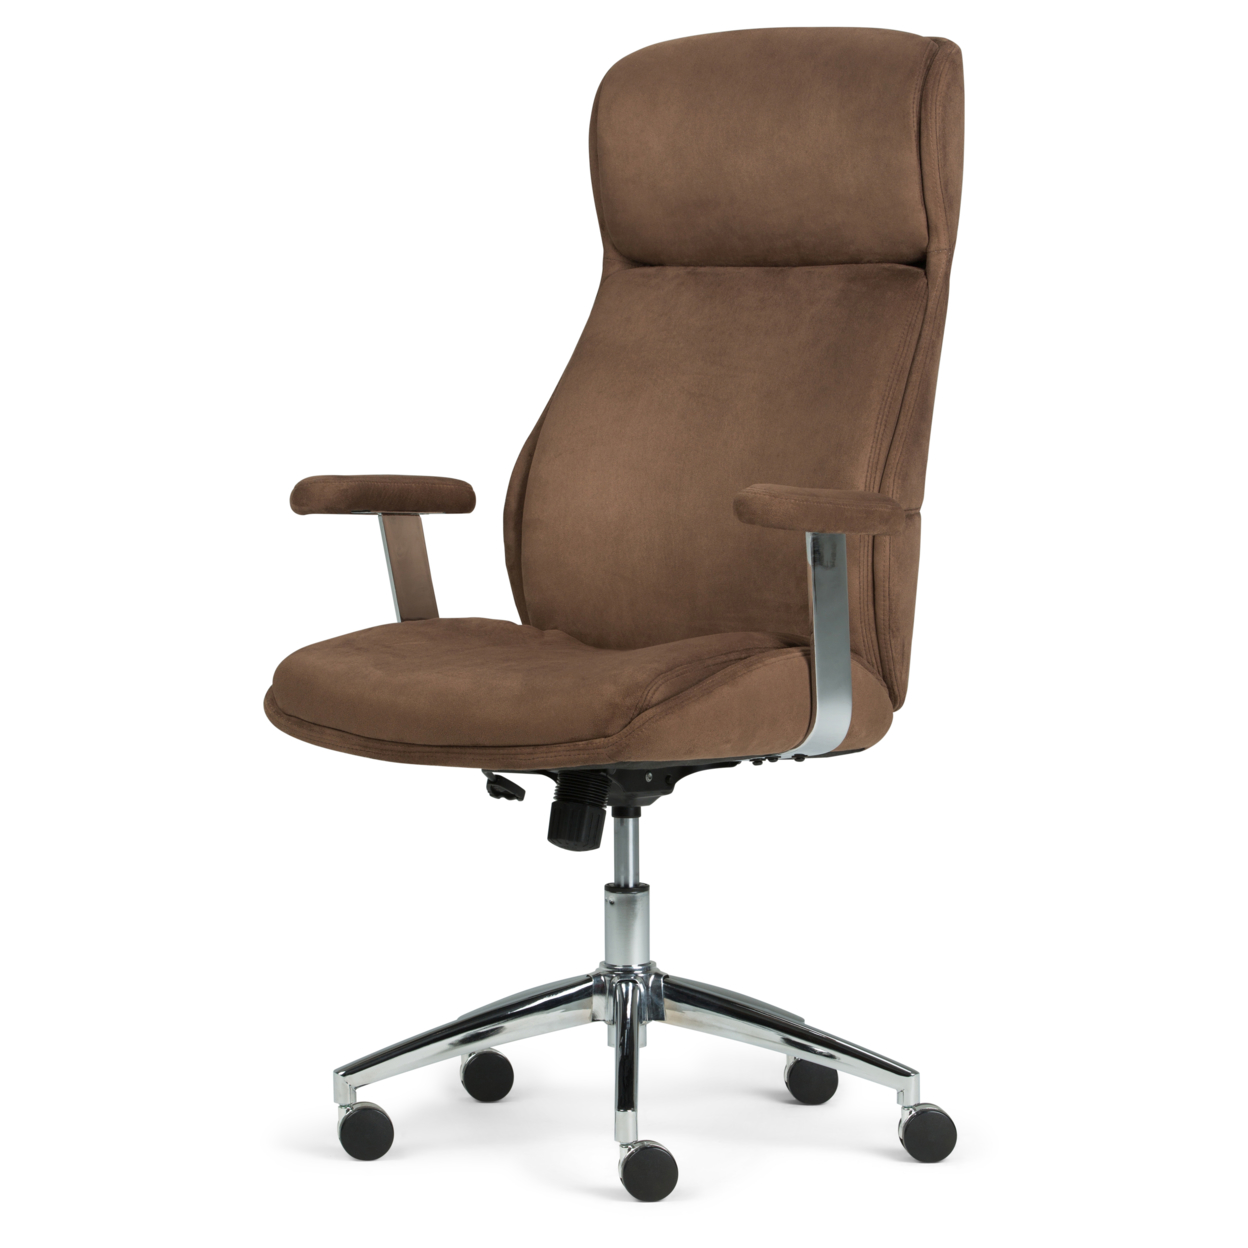 Marvelous Melbourne Swivel Office Chair In Chocolate Brown Faux Suede Pabps2019 Chair Design Images Pabps2019Com